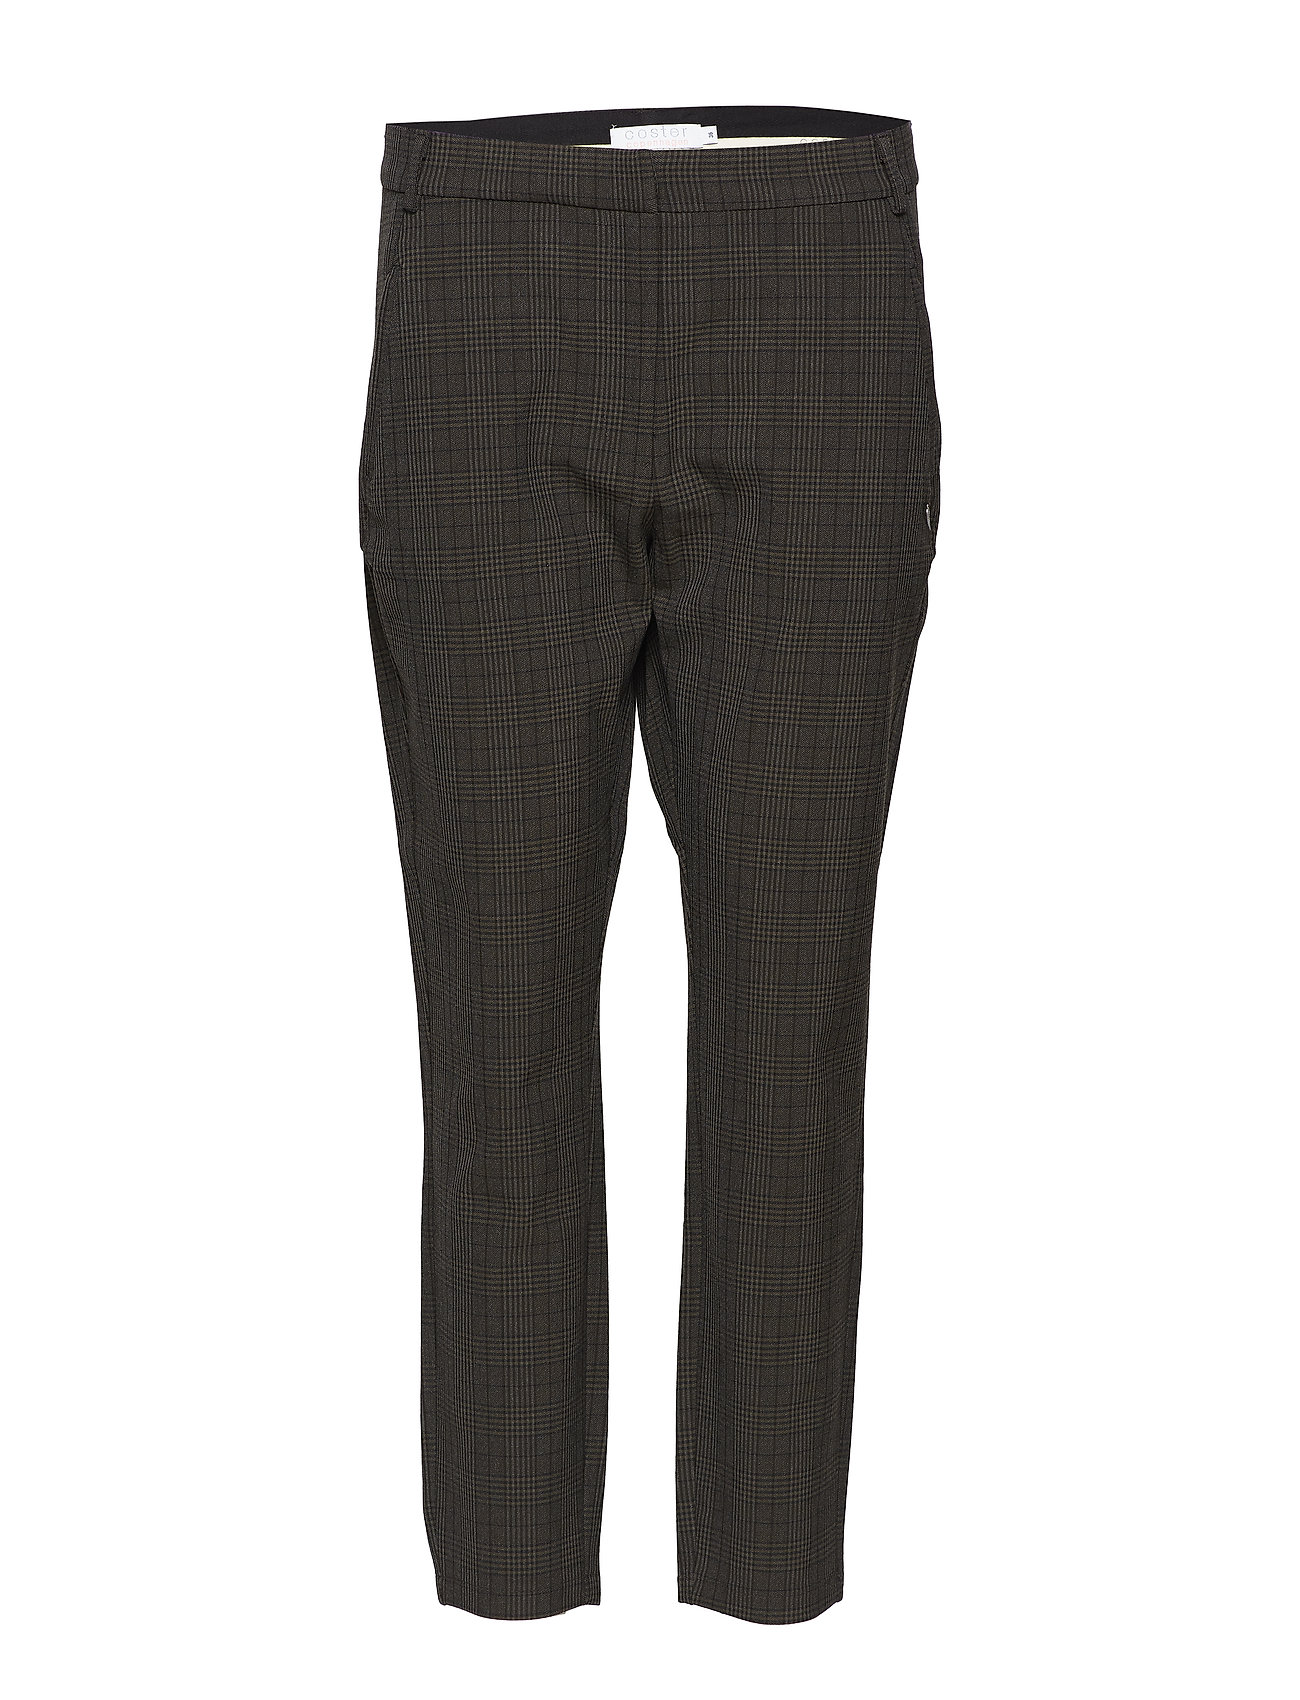 Coster Copenhagen 7 8 pants in checks Byxor